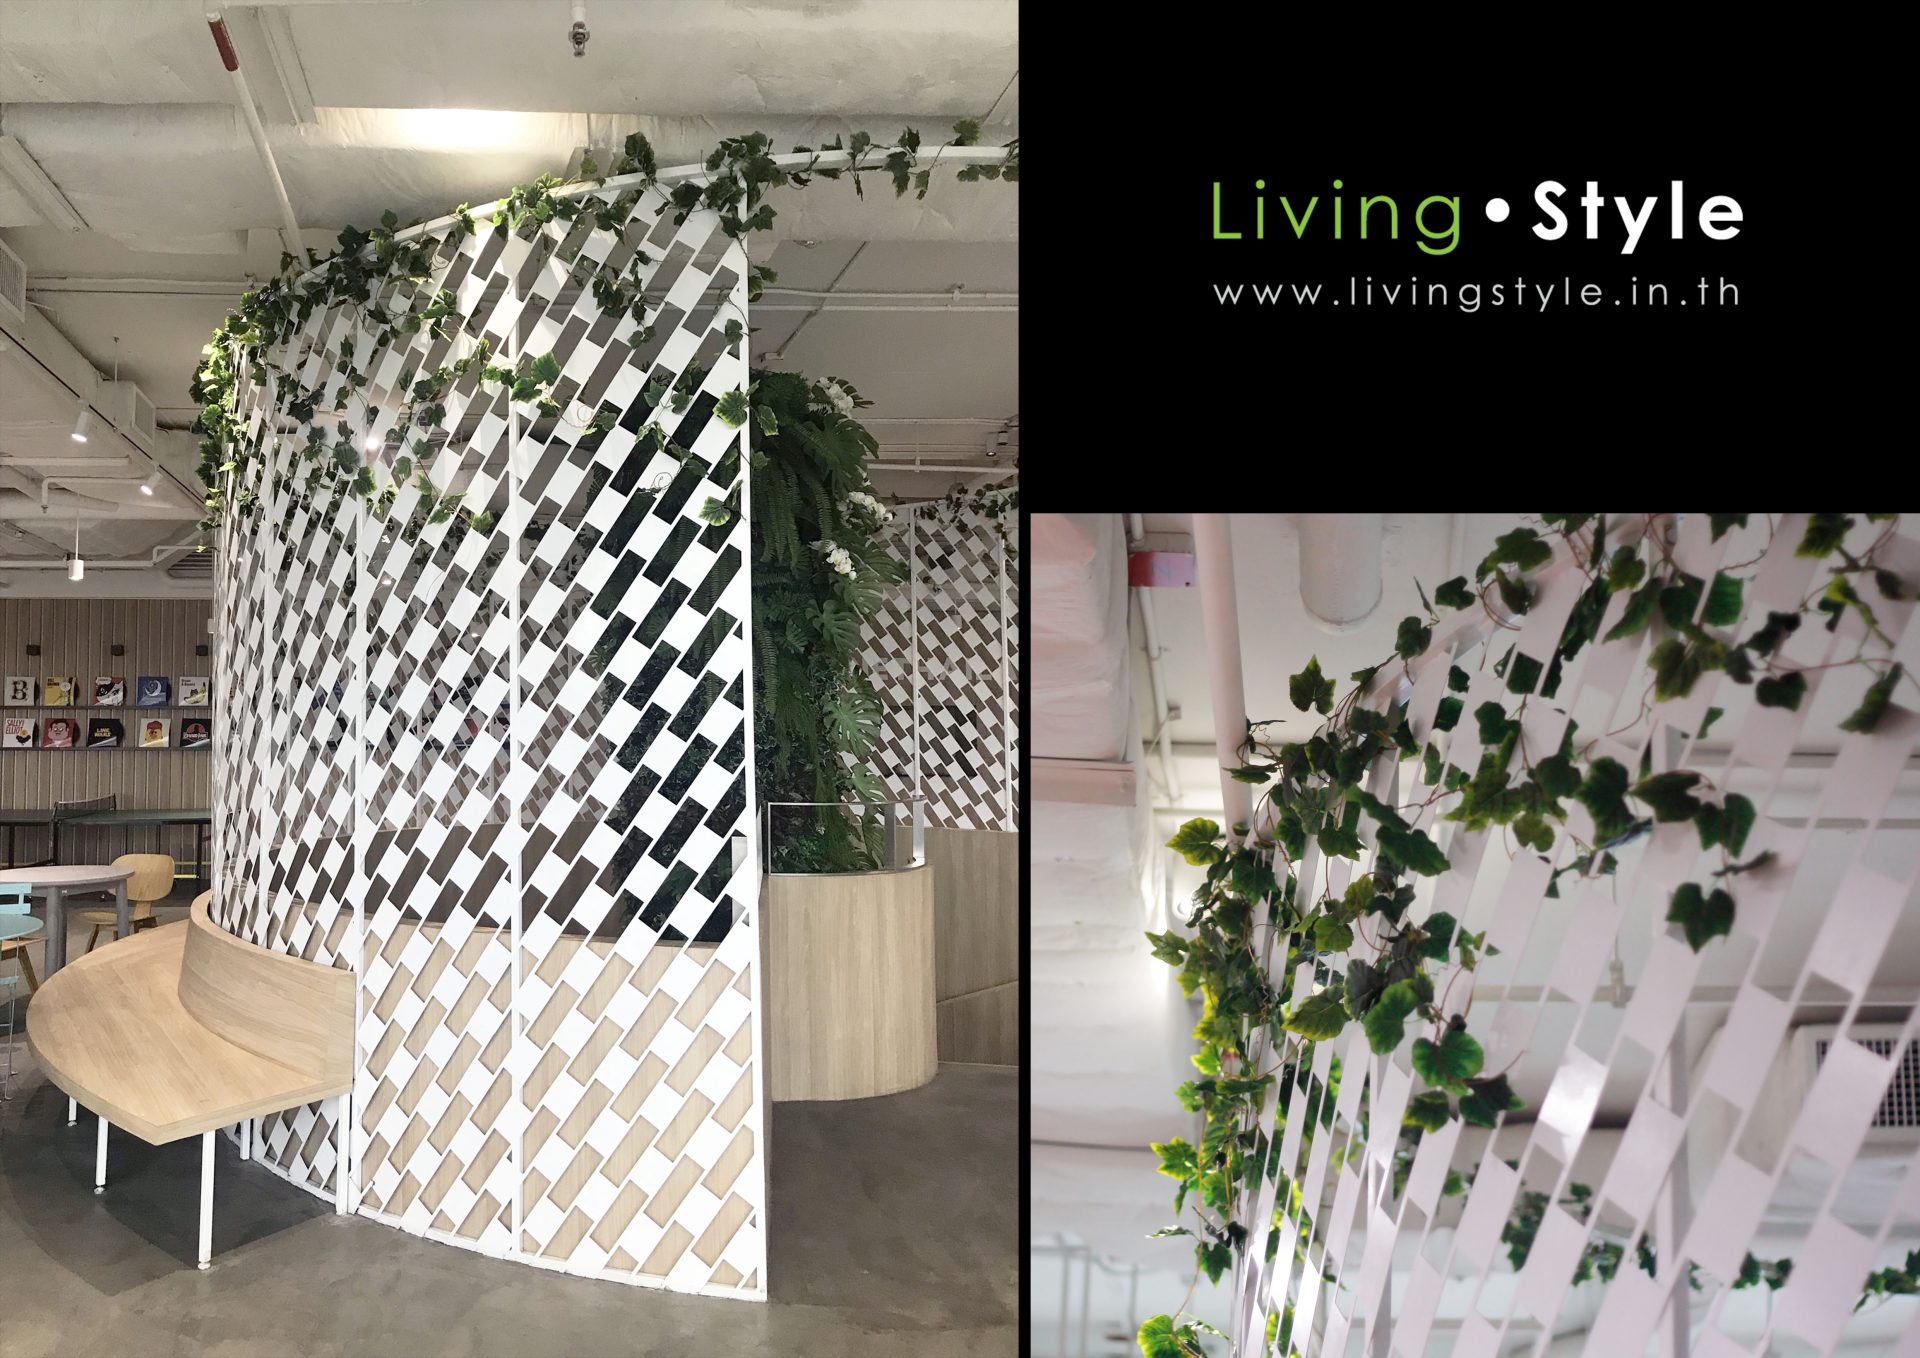 Livingstyle 021 catalog